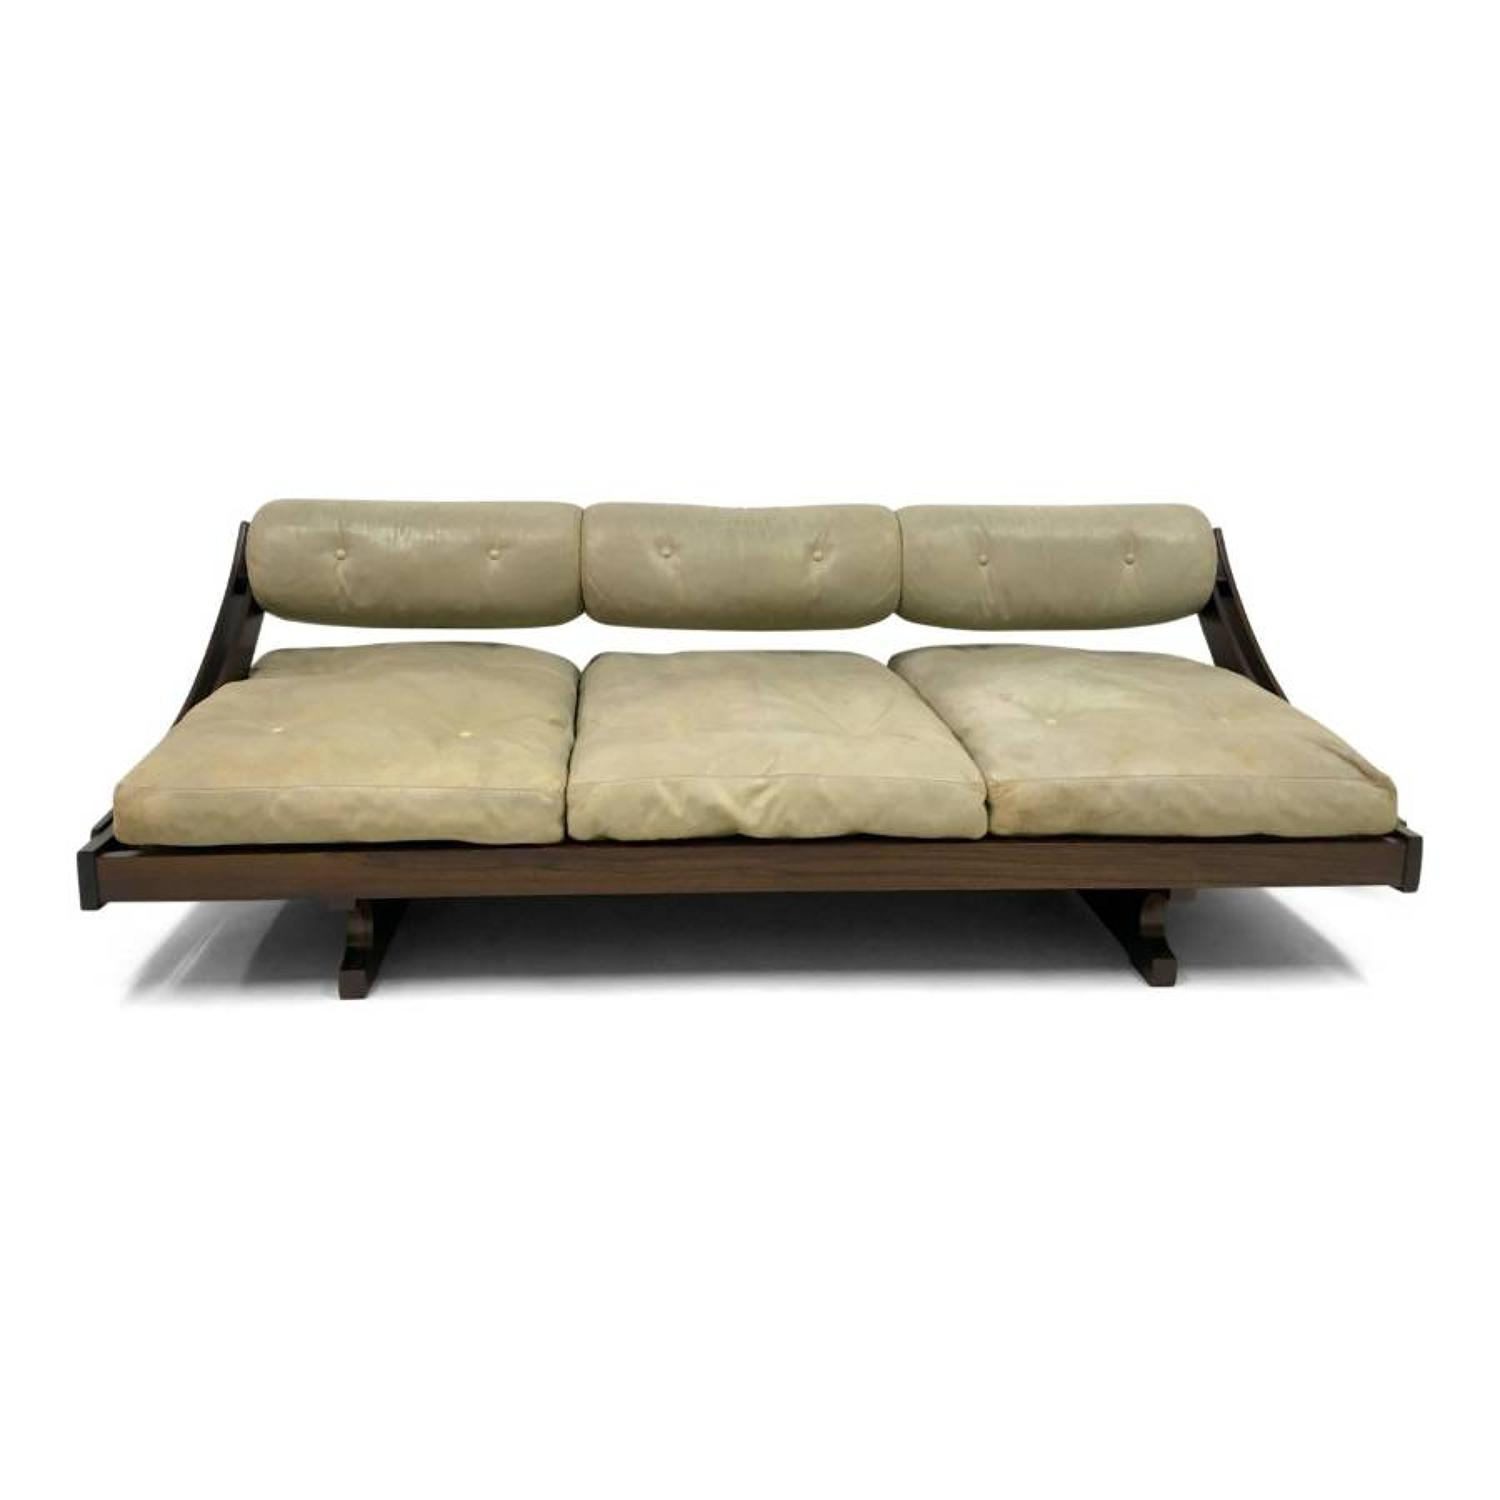 GS195 daybed by Gianni Songia for Sormani